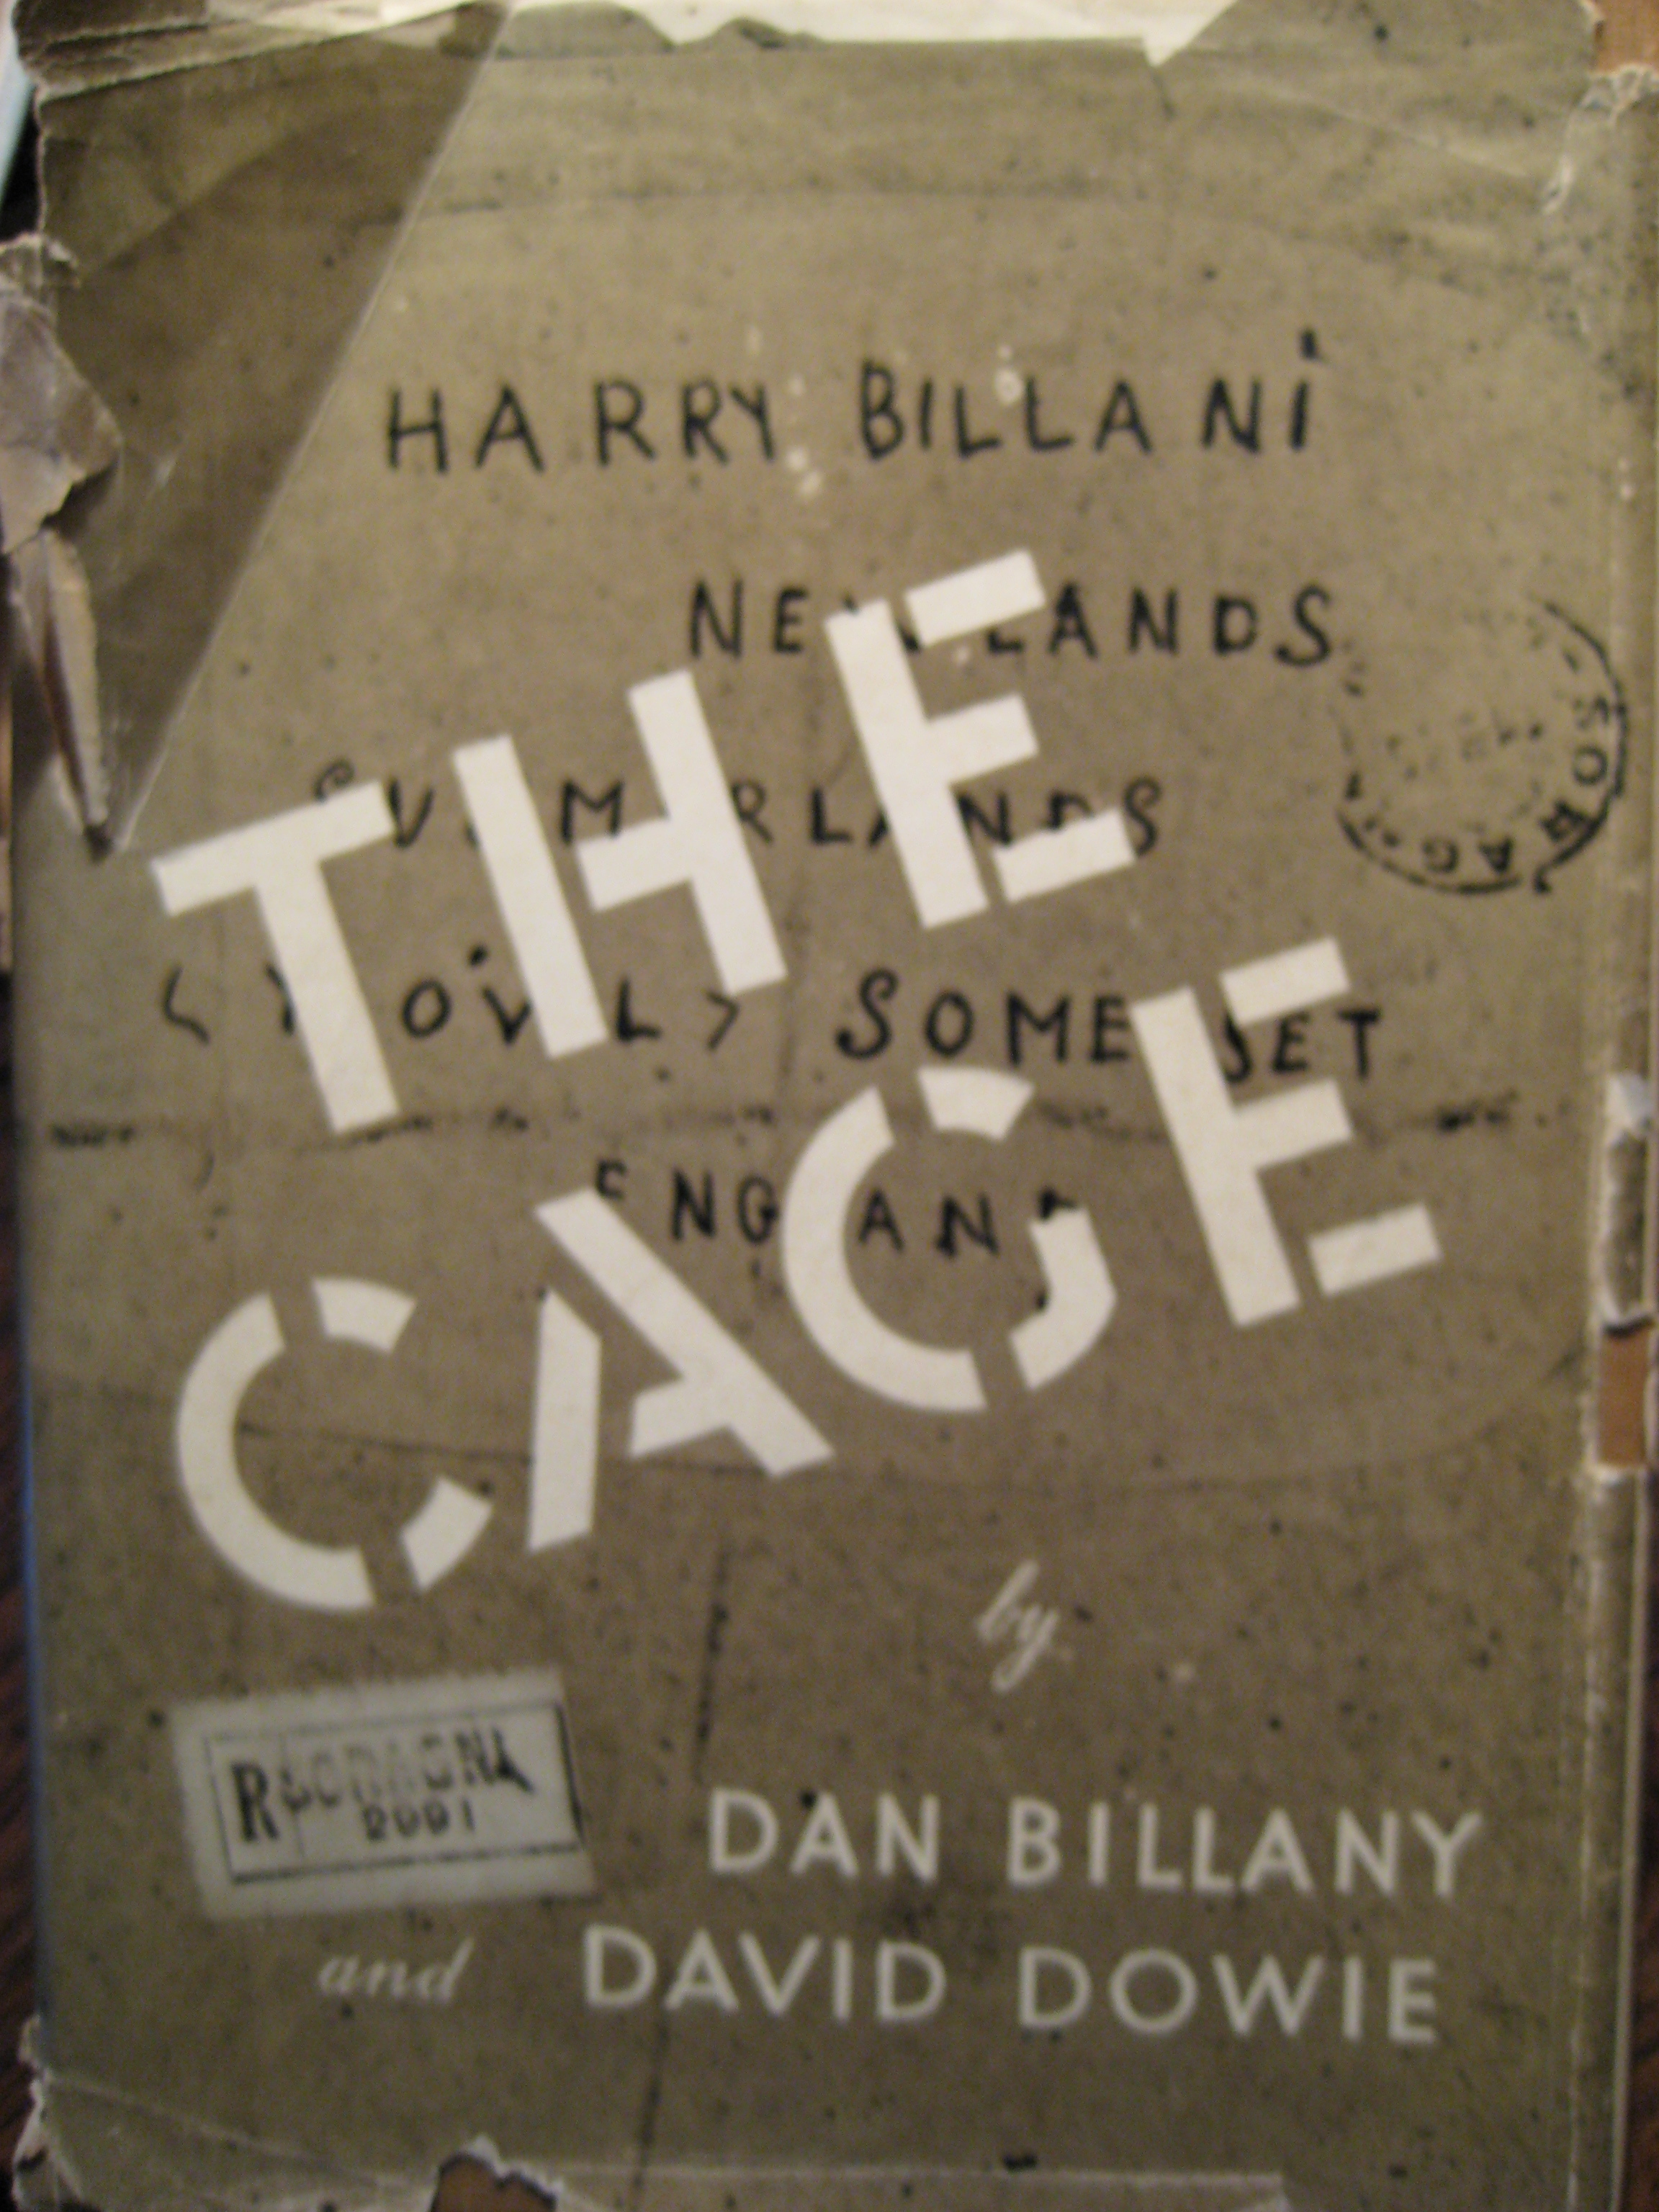 The Cage by Dan Billany and David Dowie